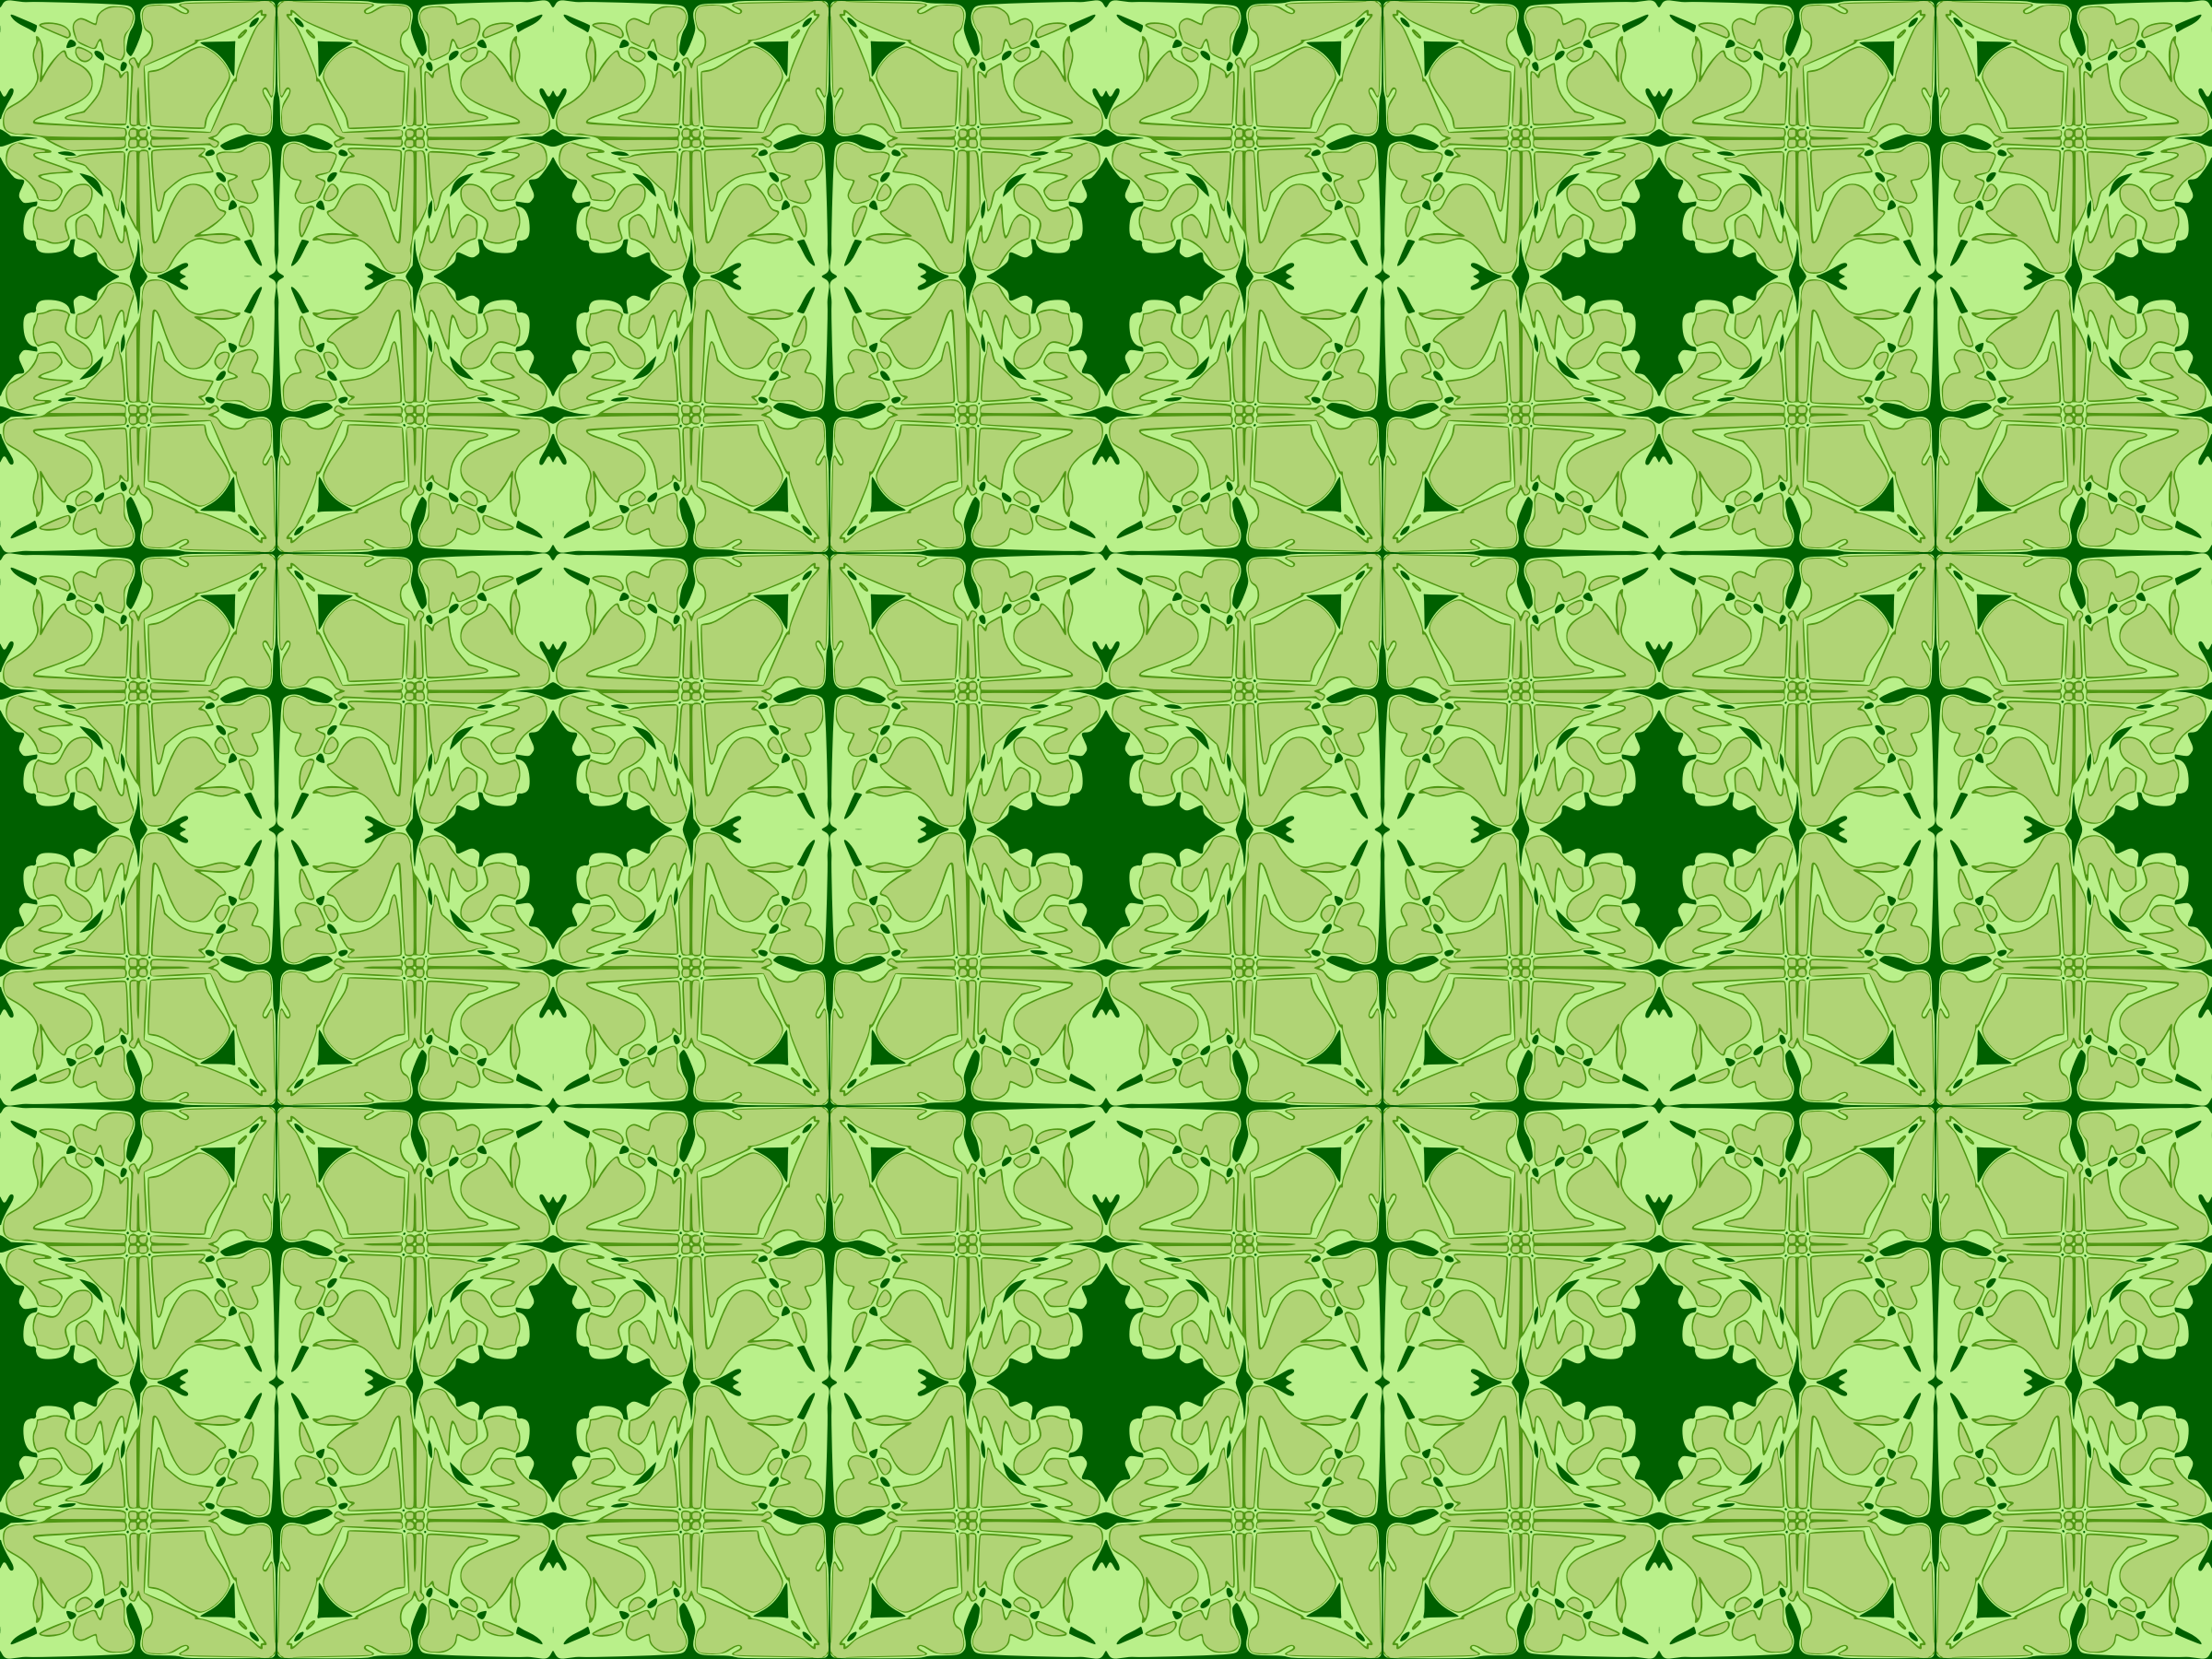 Art nouveau tile pattern remix by Firkin